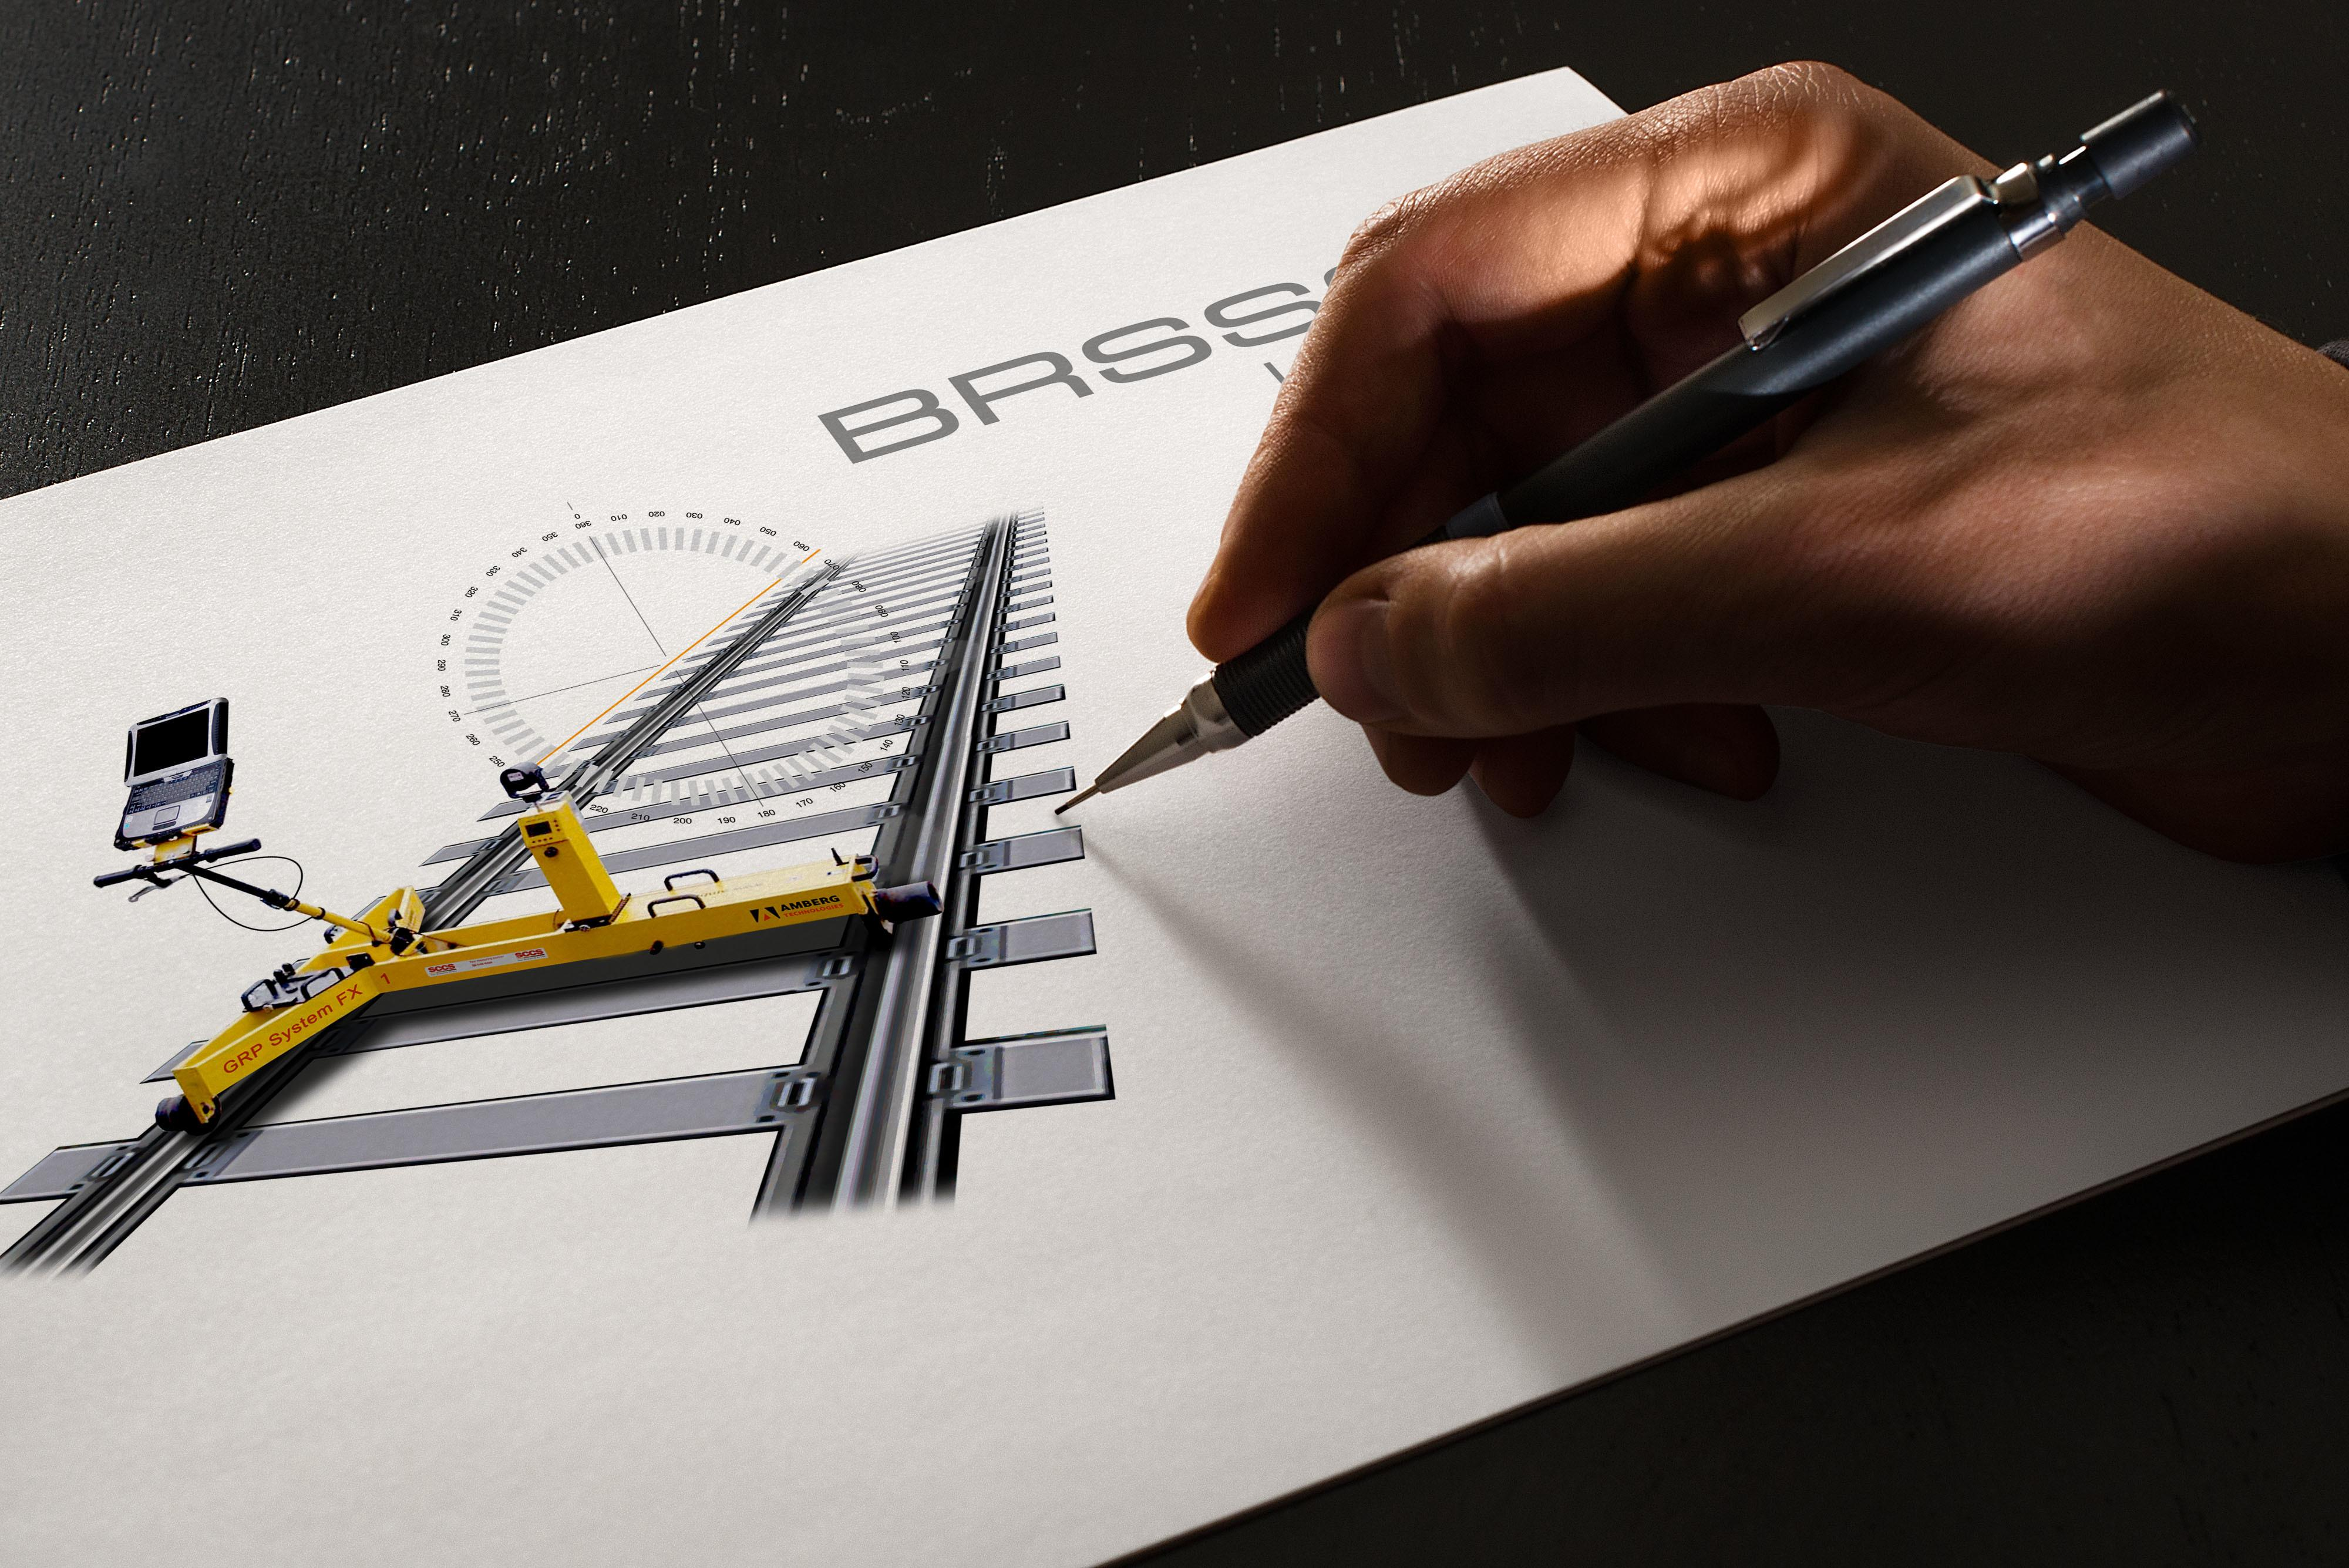 An image showing the final logo design for BROSSOS on a sketchpad with a persons hand holding a pencil on the right.